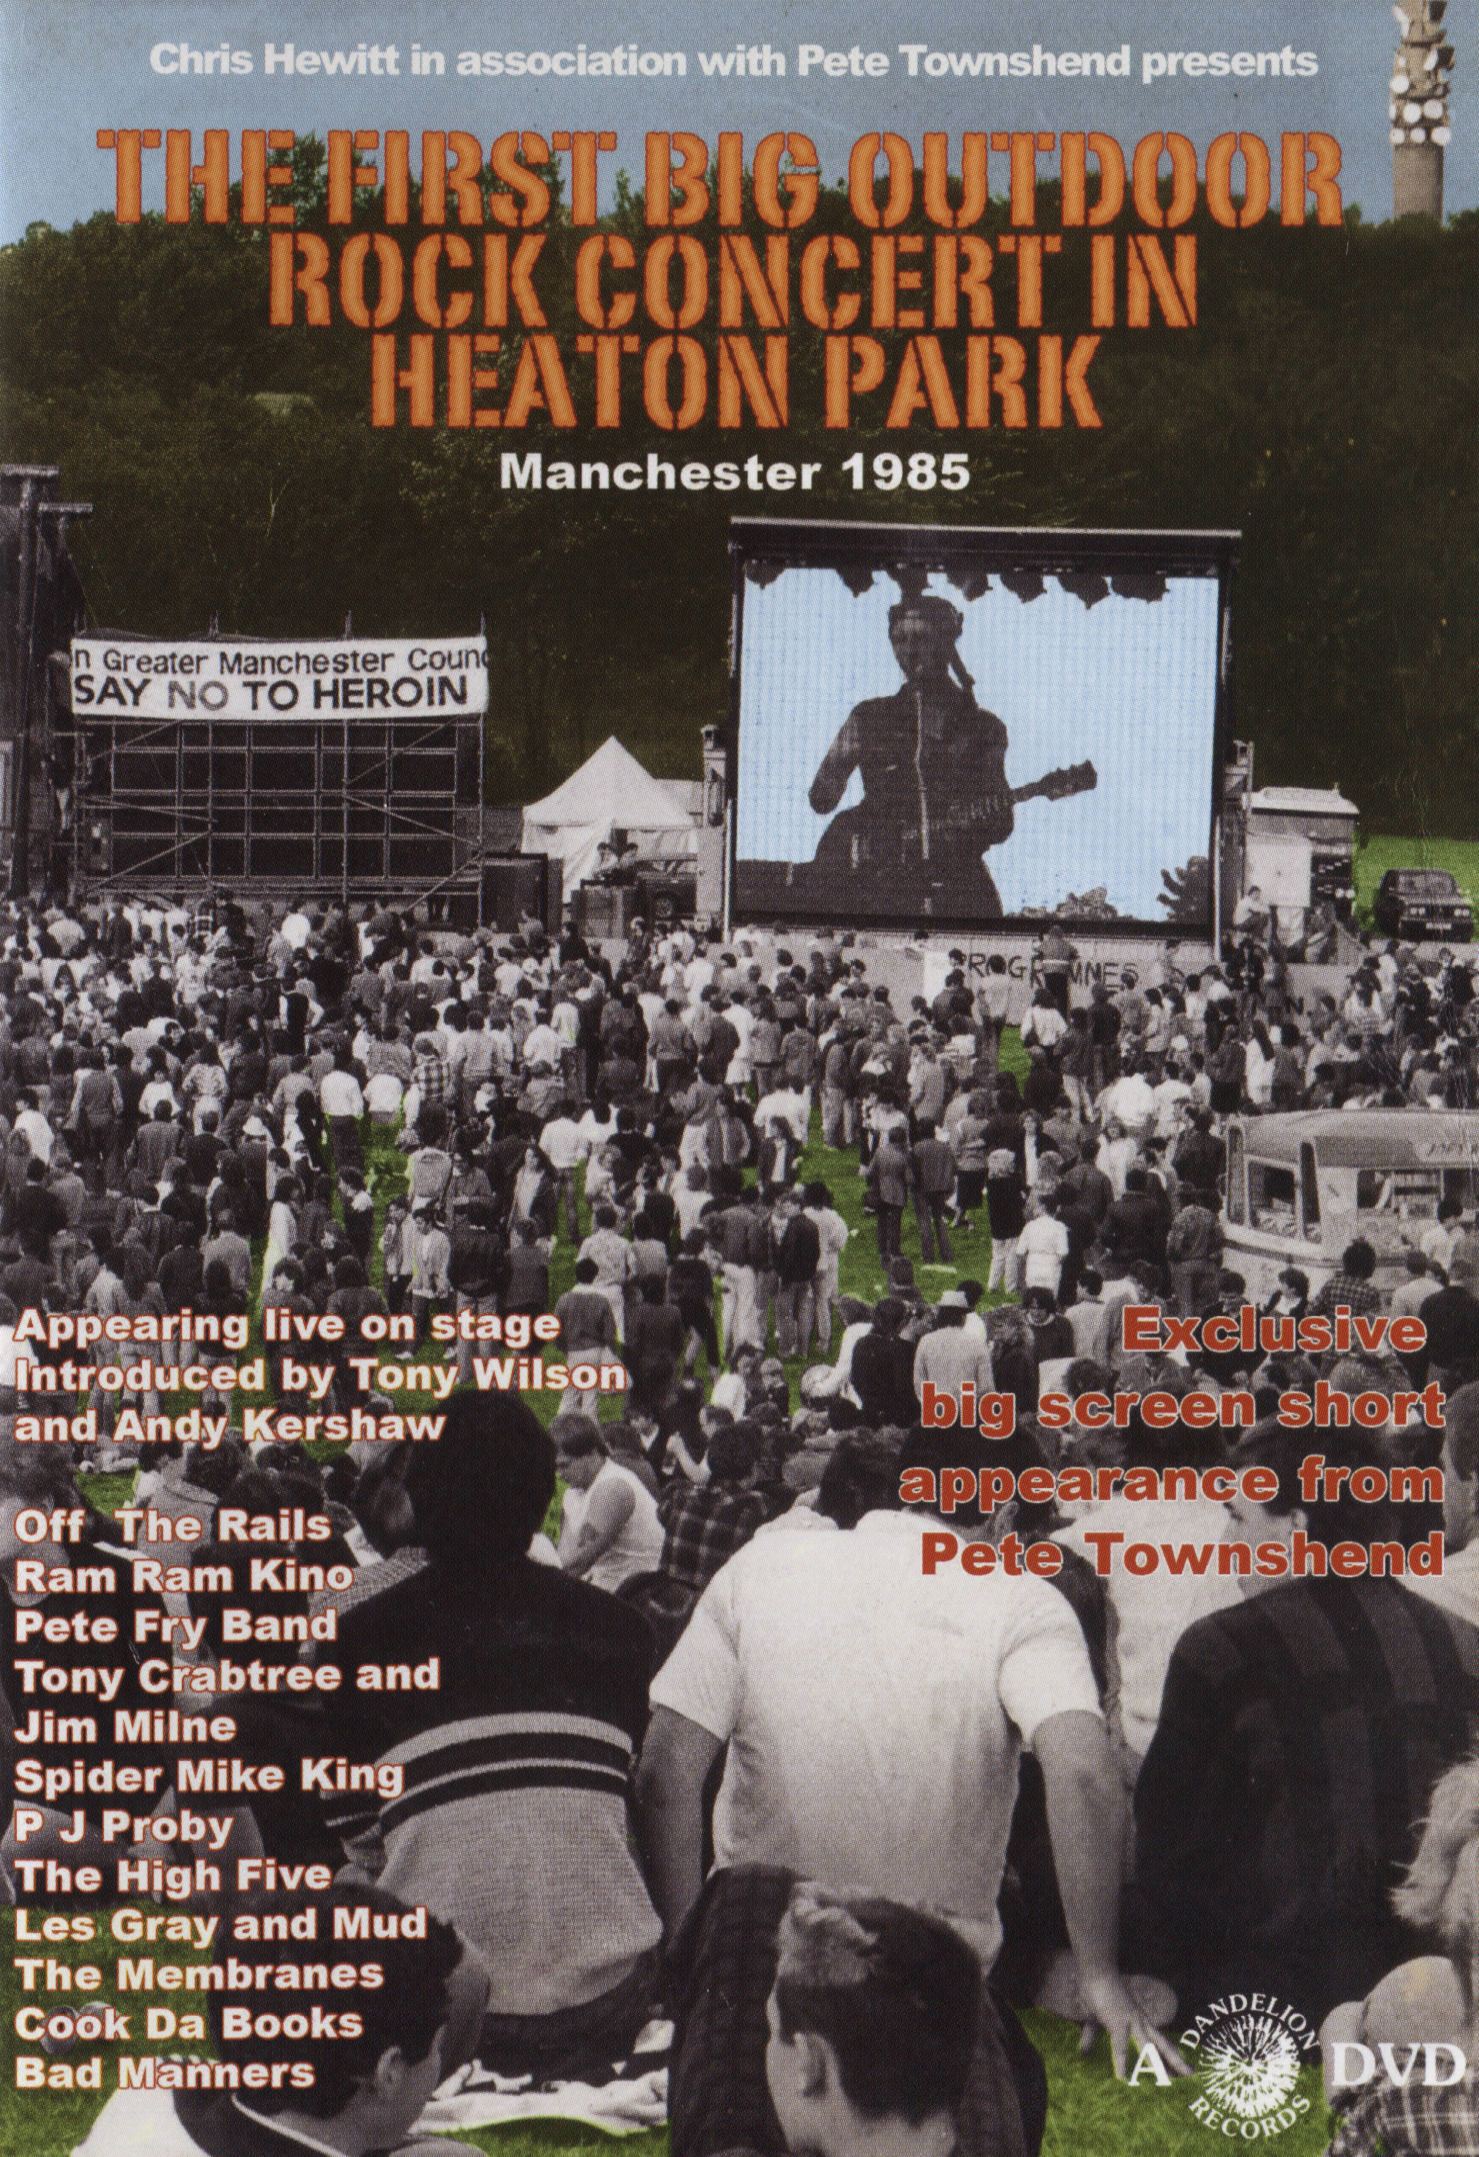 The First Big Outdoor Rock Concert in Heaton Park